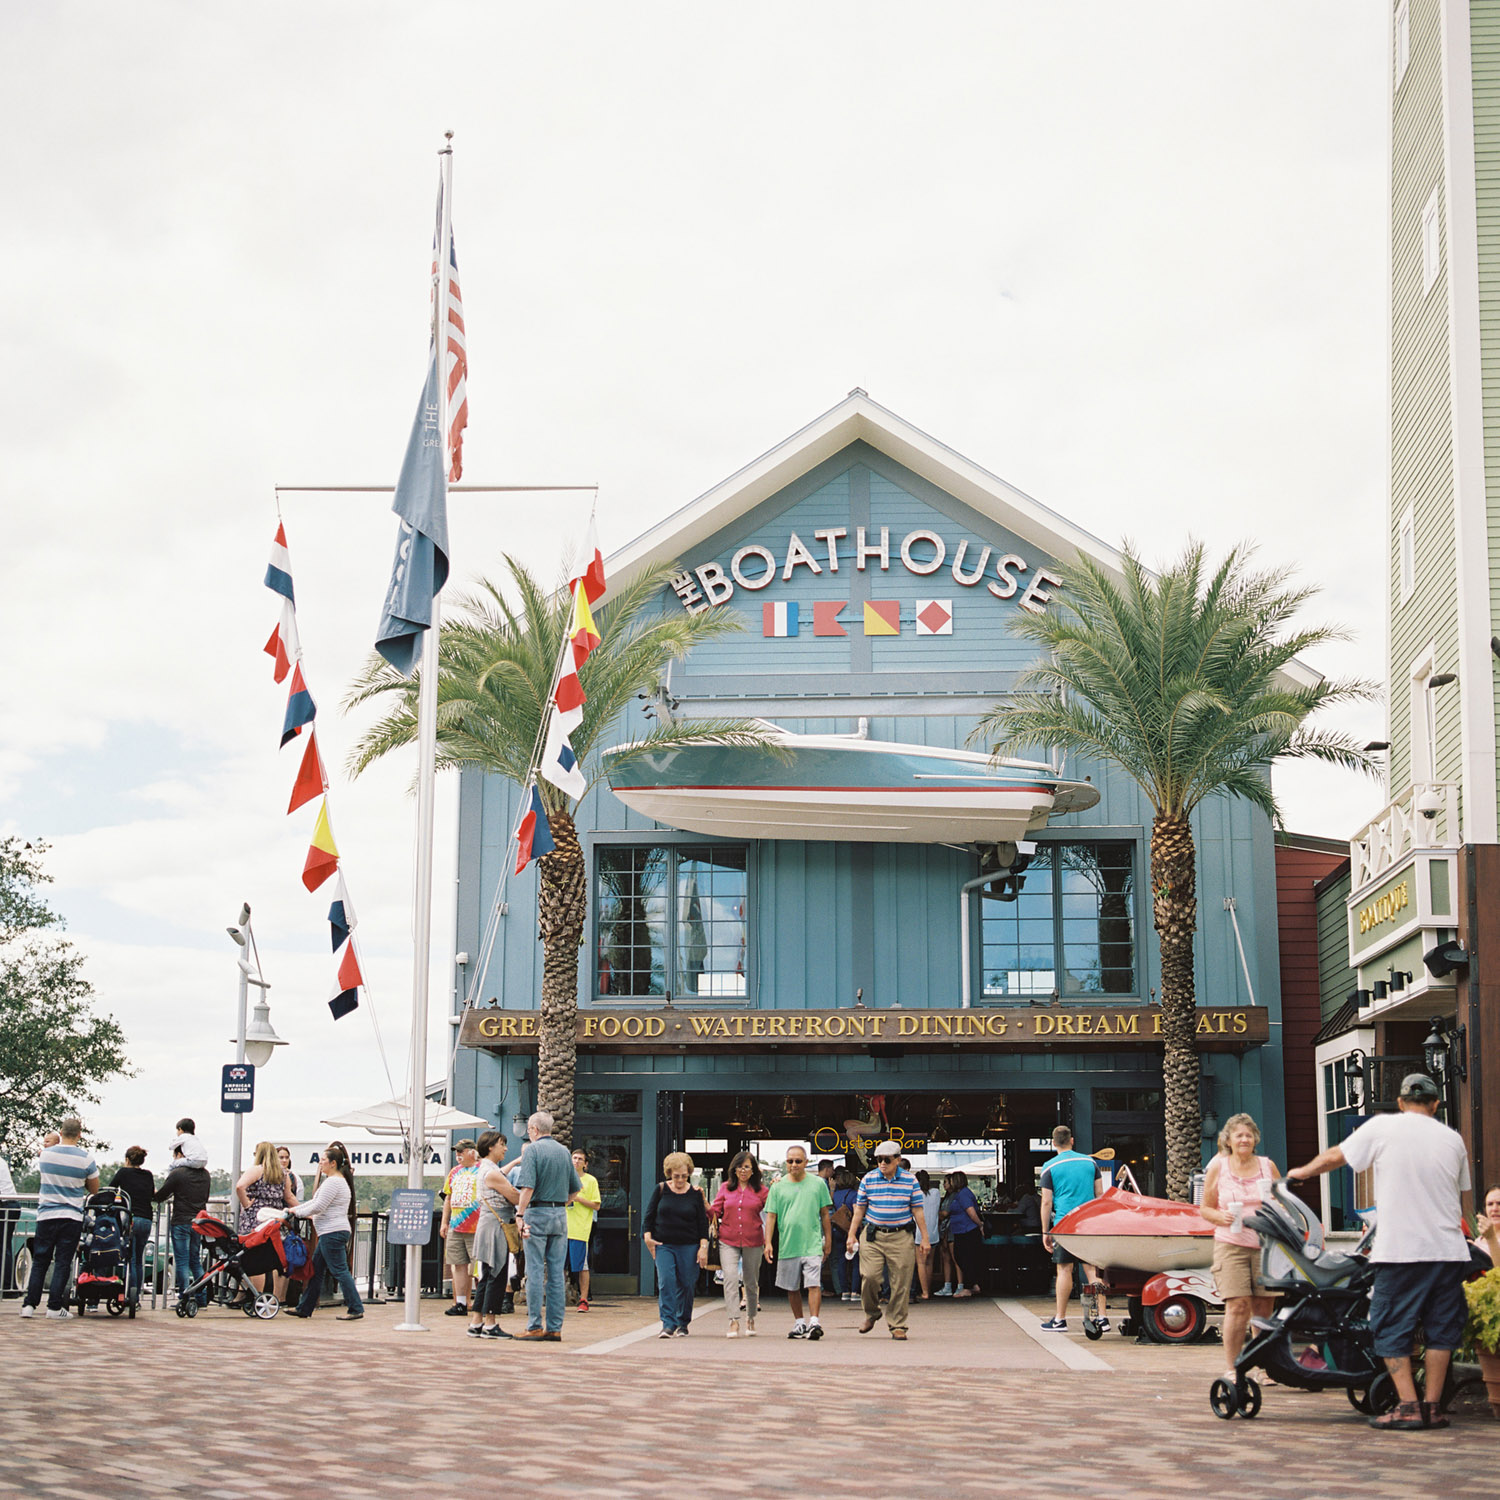 The Boathouse at Disney Springs - the 6x6 format really covers the whole scene